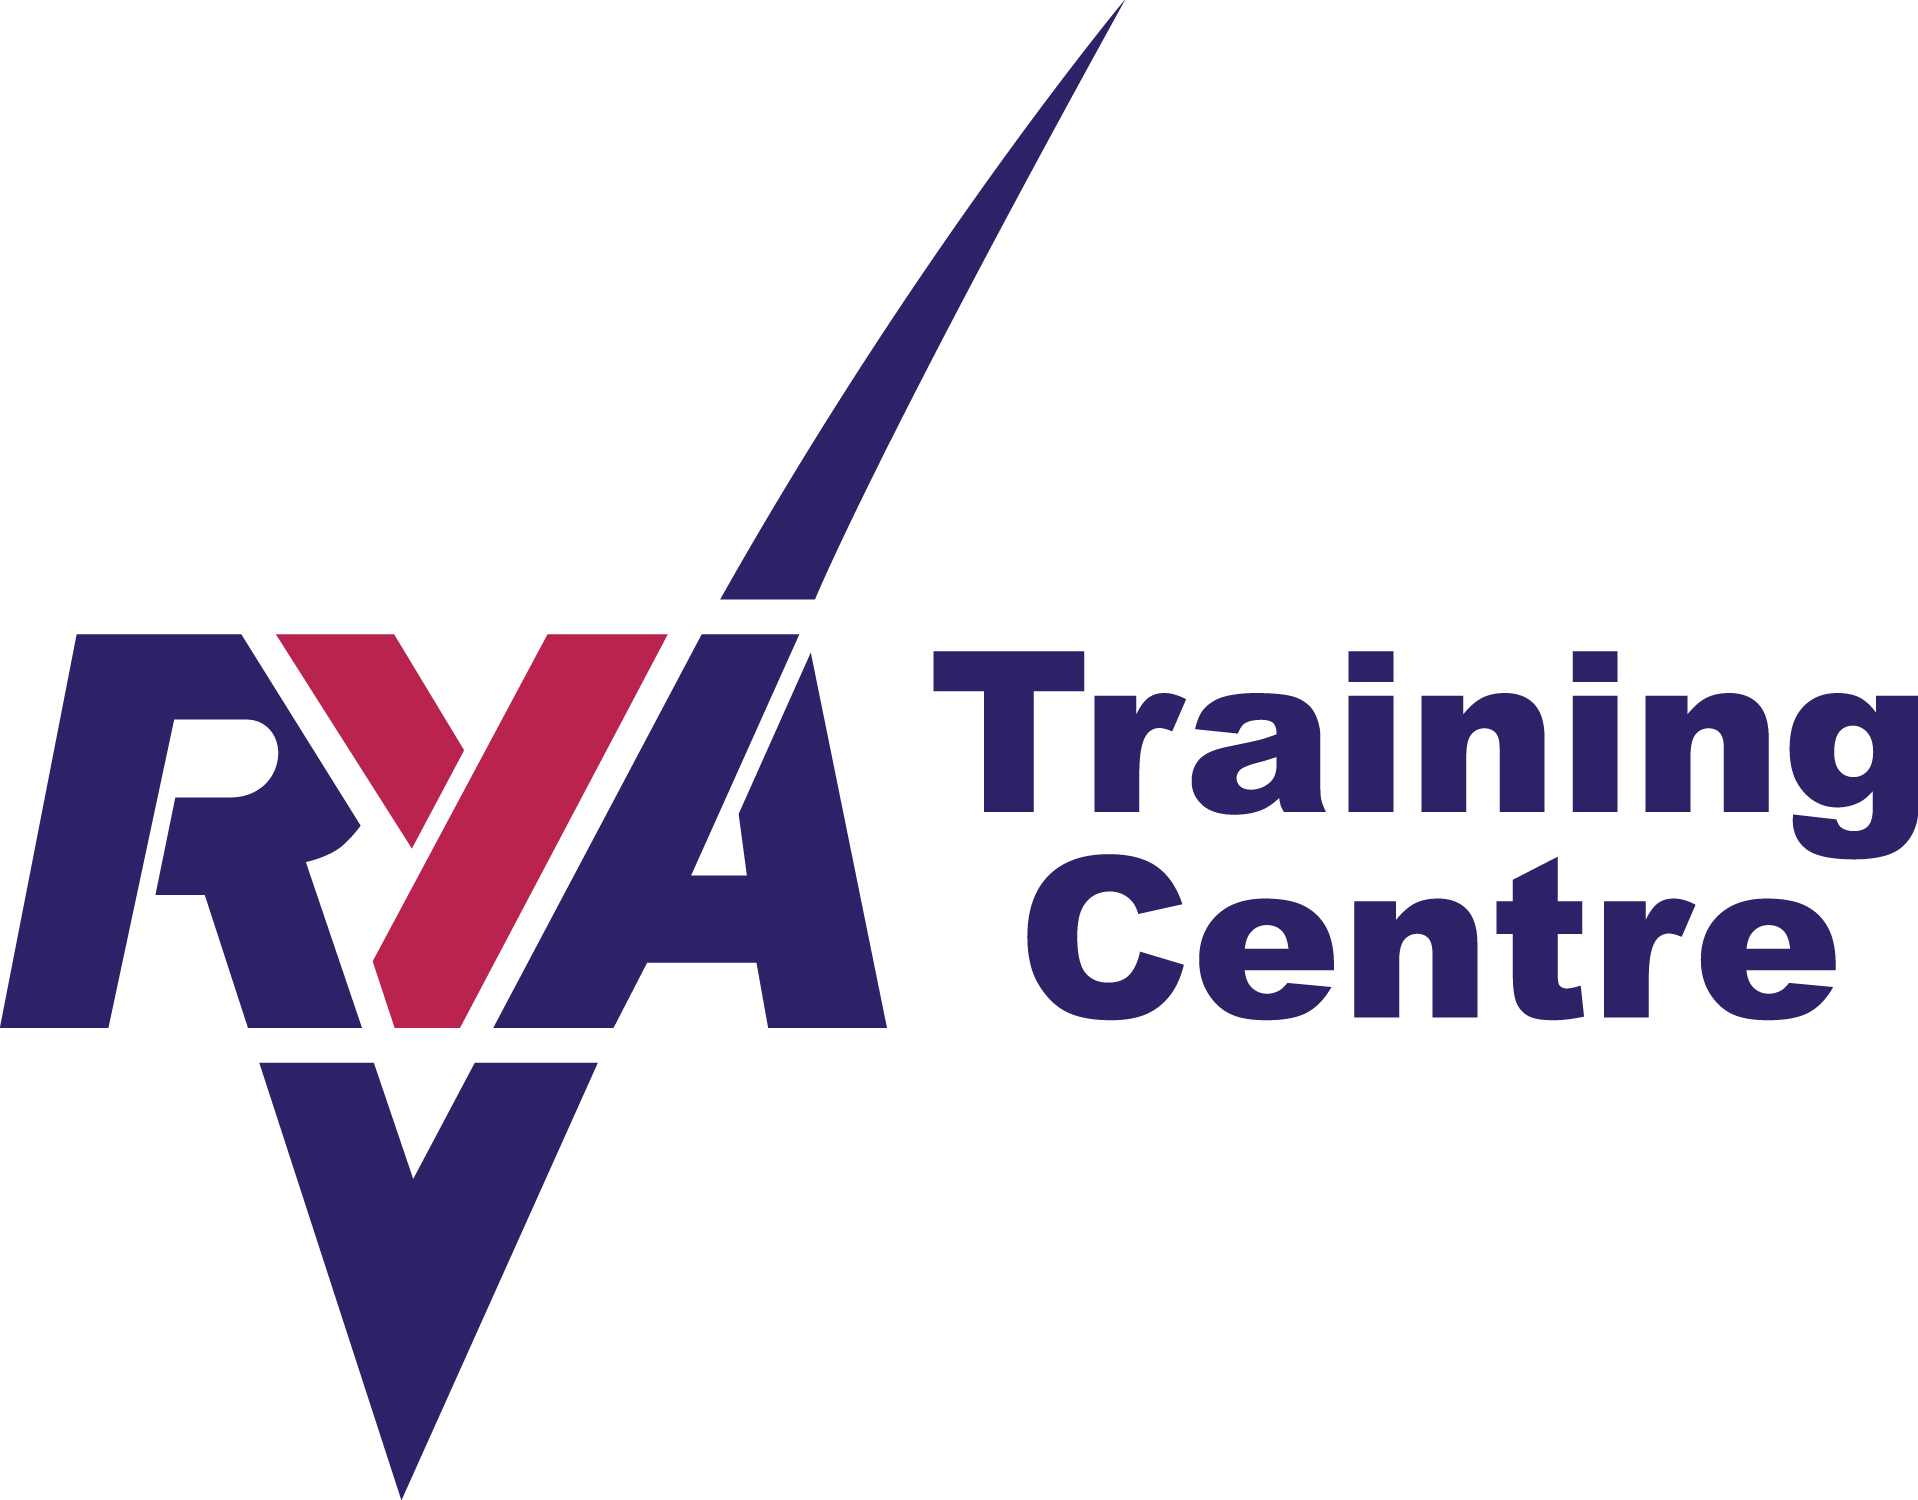 RYA training center